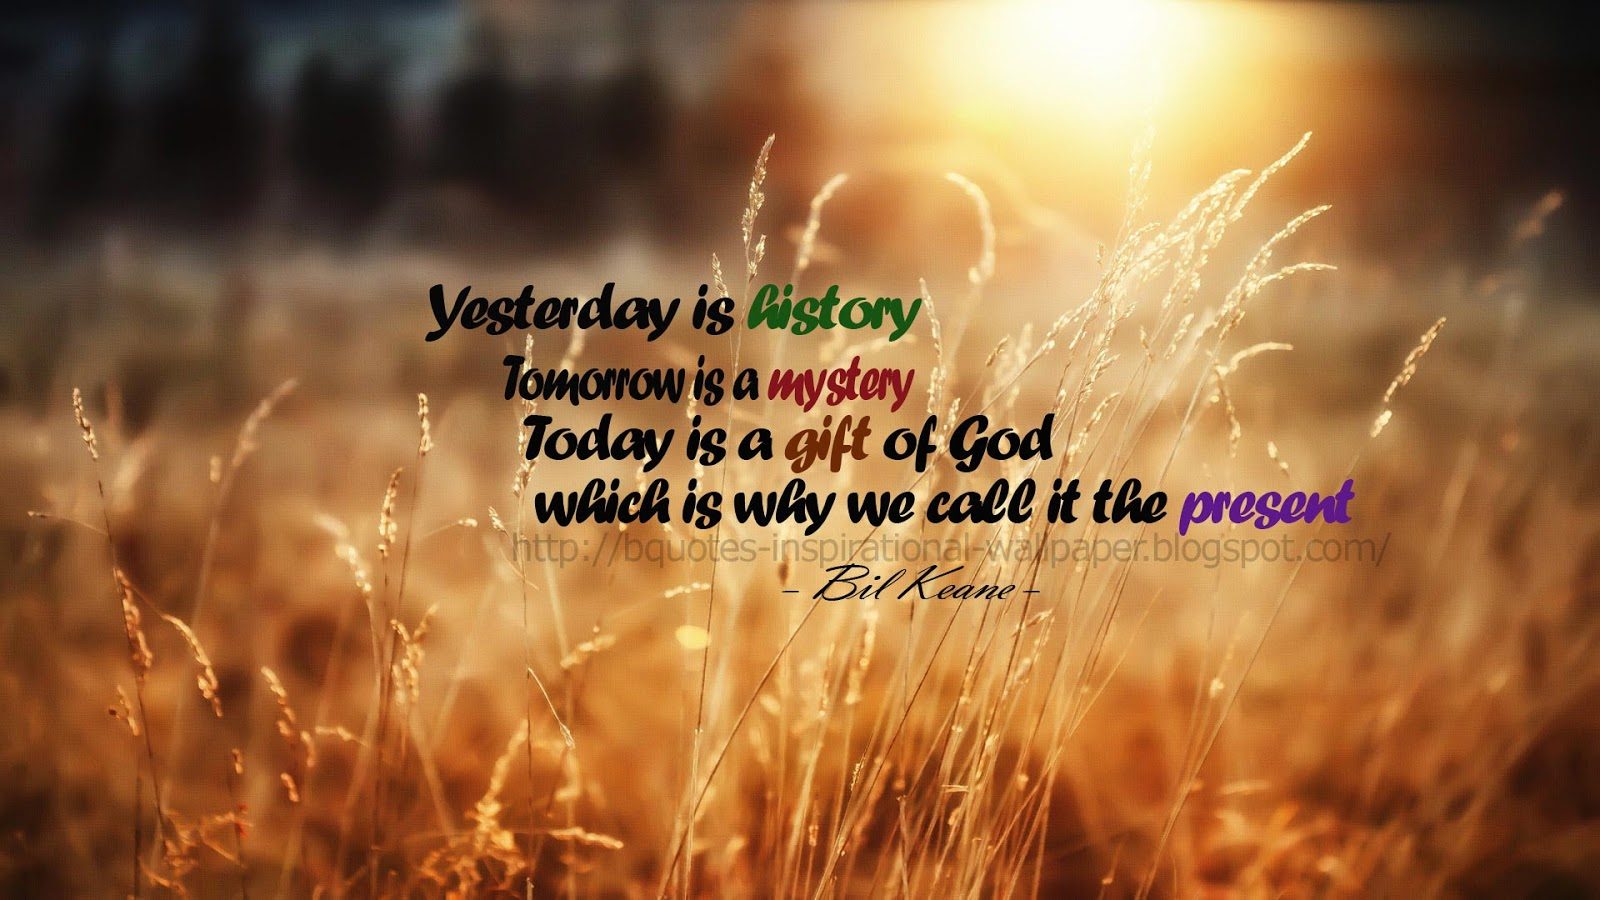 Quotes And Inspirational Wallpapers Yesterday Is History